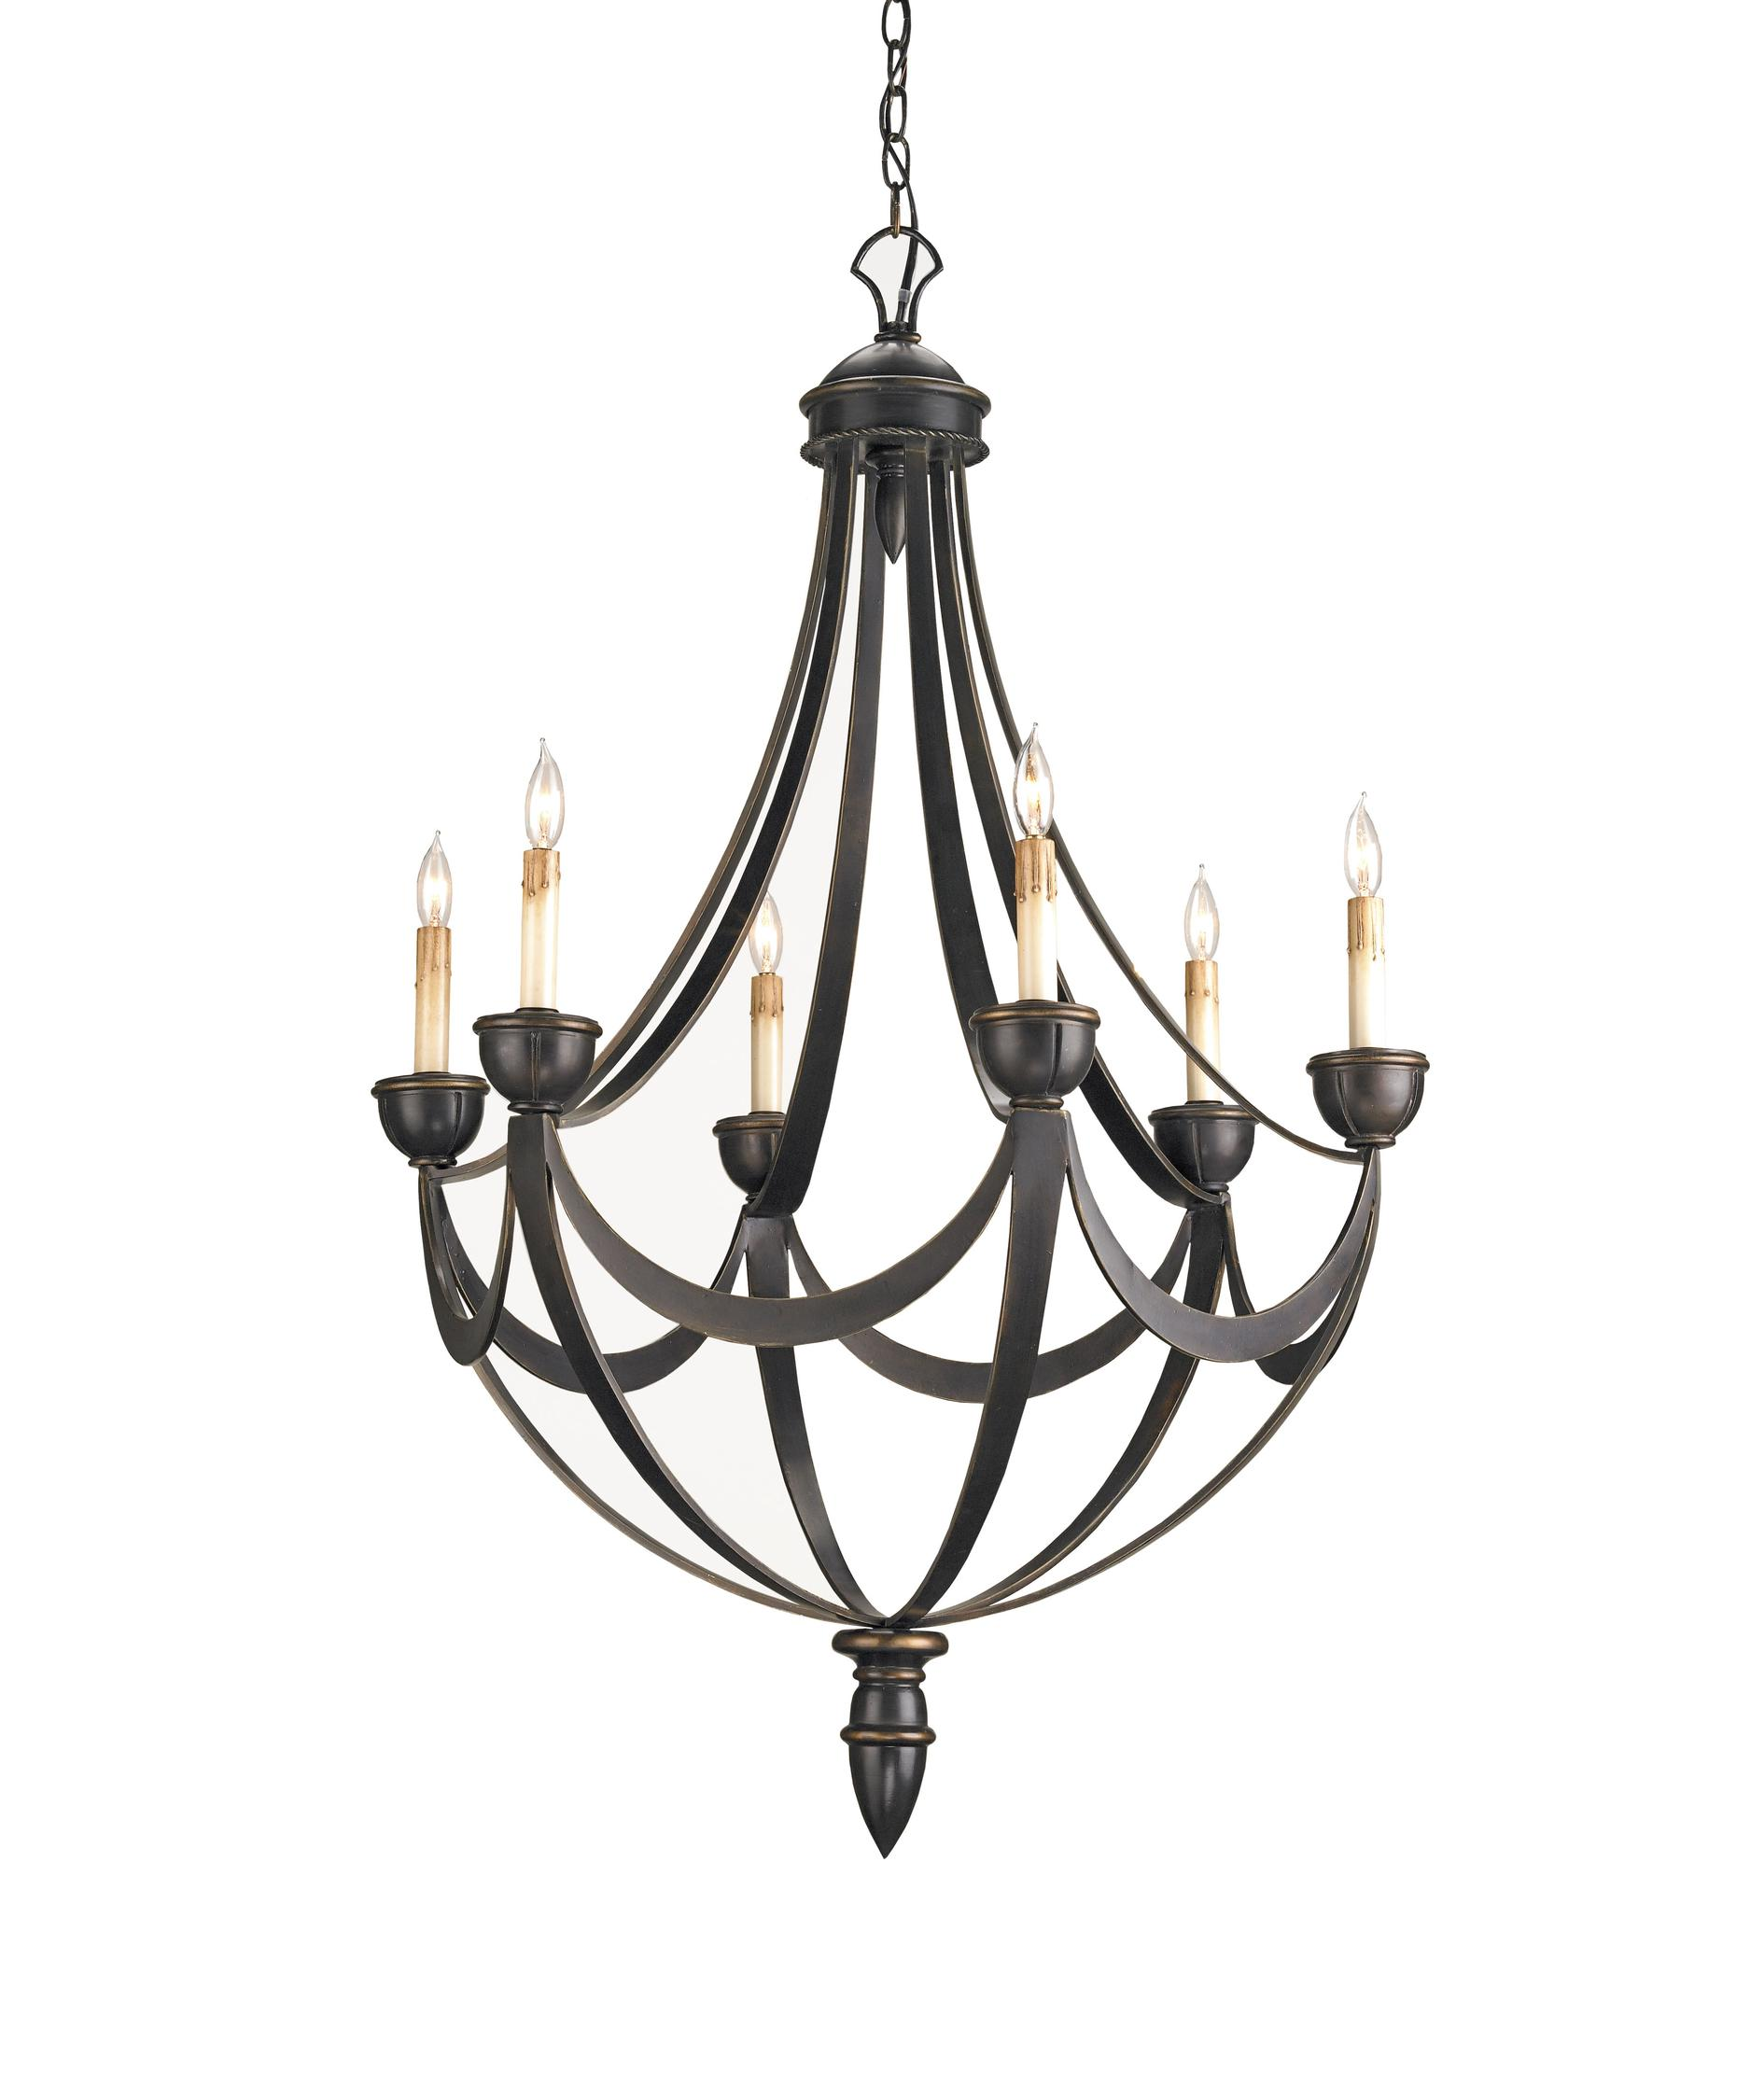 Currey and Company Palomino 28 Inch Wide 6 Light Chandelier – Currey and Company Lighting Chandeliers